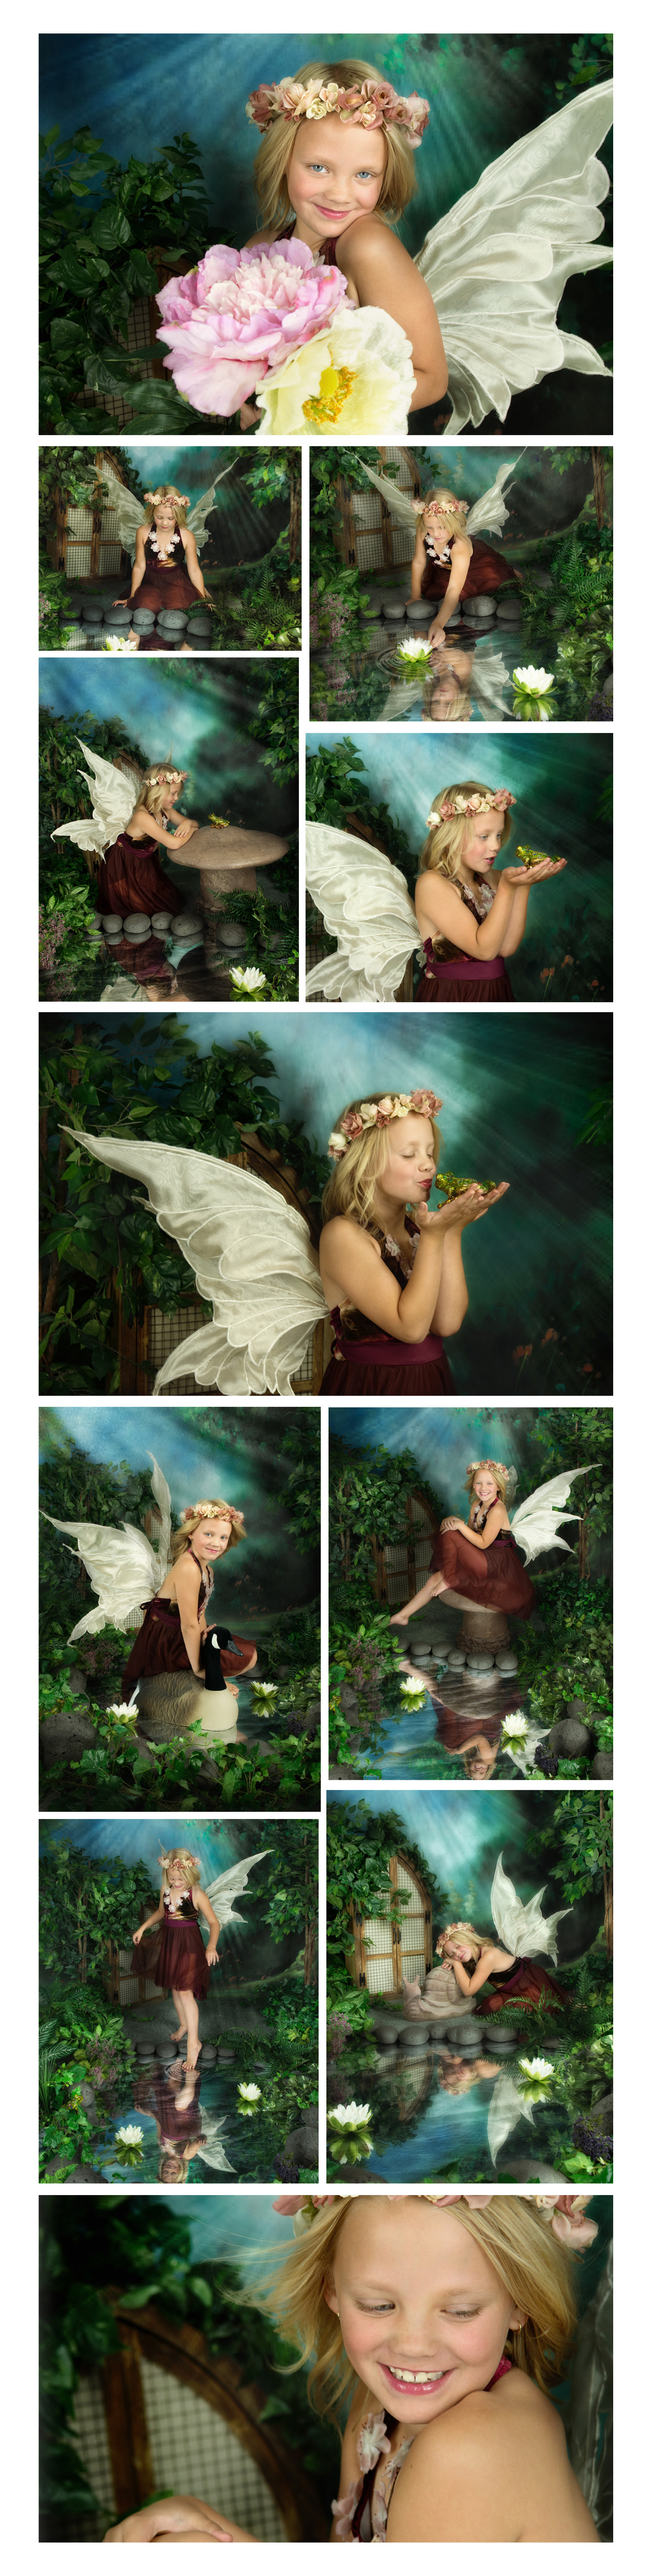 -enchanted-forest-fairy-by-free-lense-photo.jpg